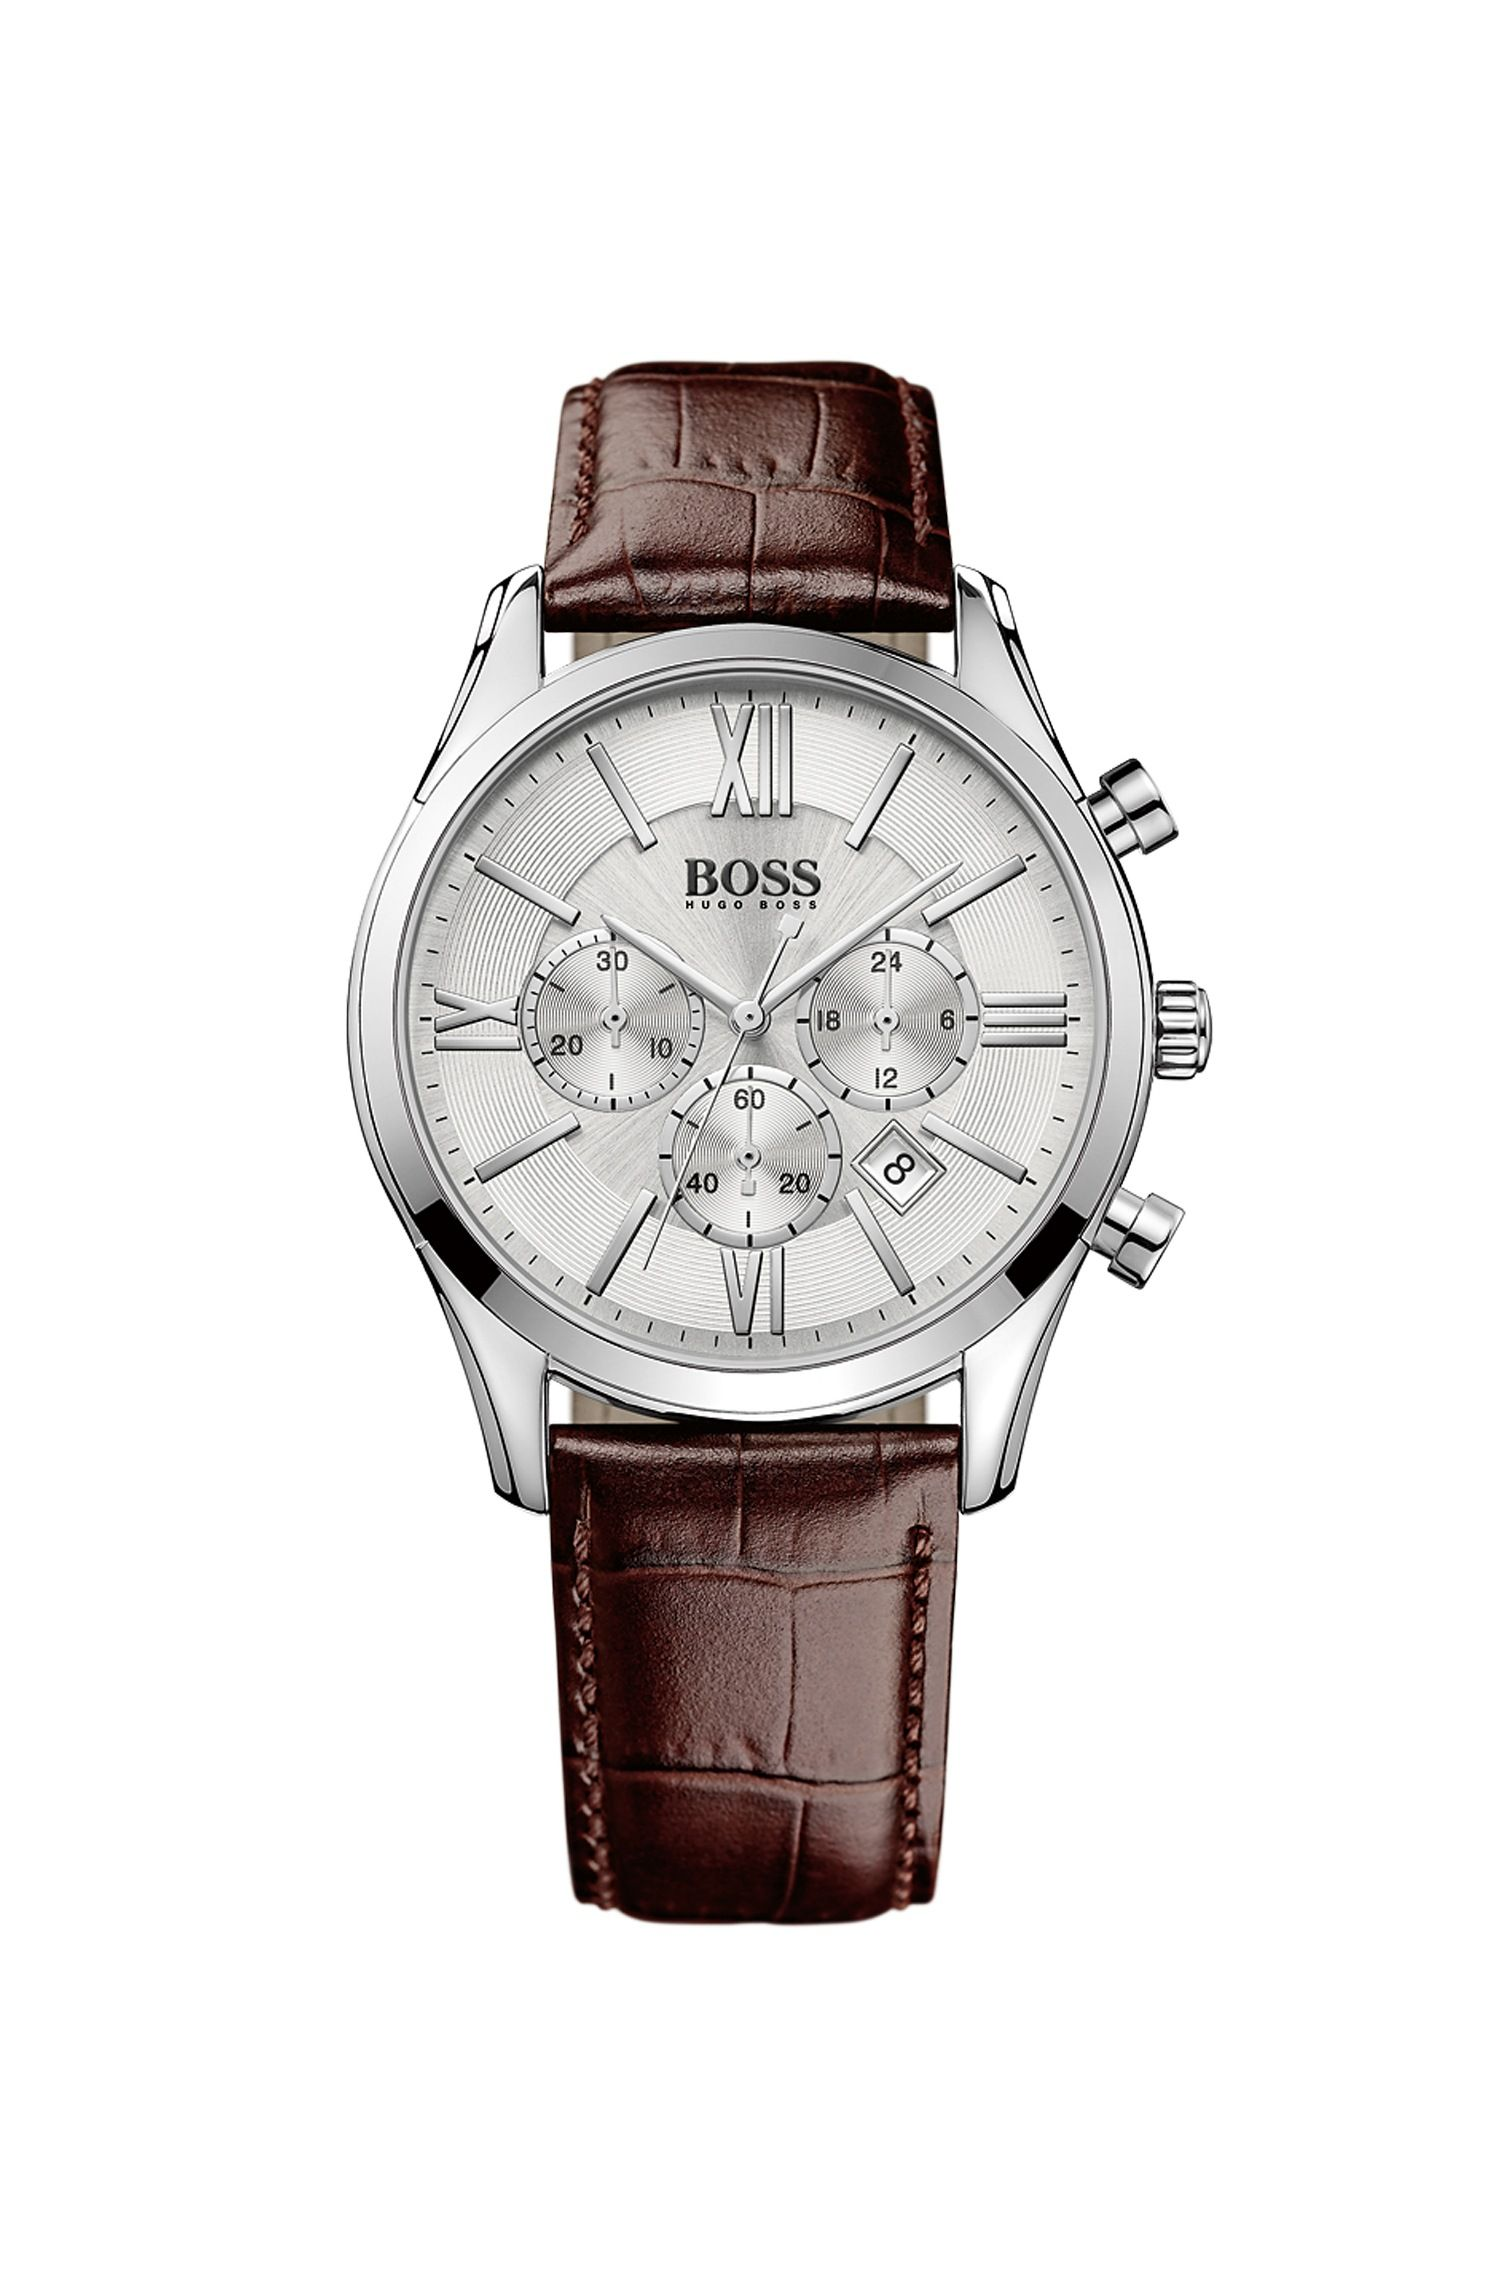 hbambsr chronograph stainless steel leather strap quartz watch hbambsr chronograph stainless steel leather strap quartz watch hugo boss menchronographquartz